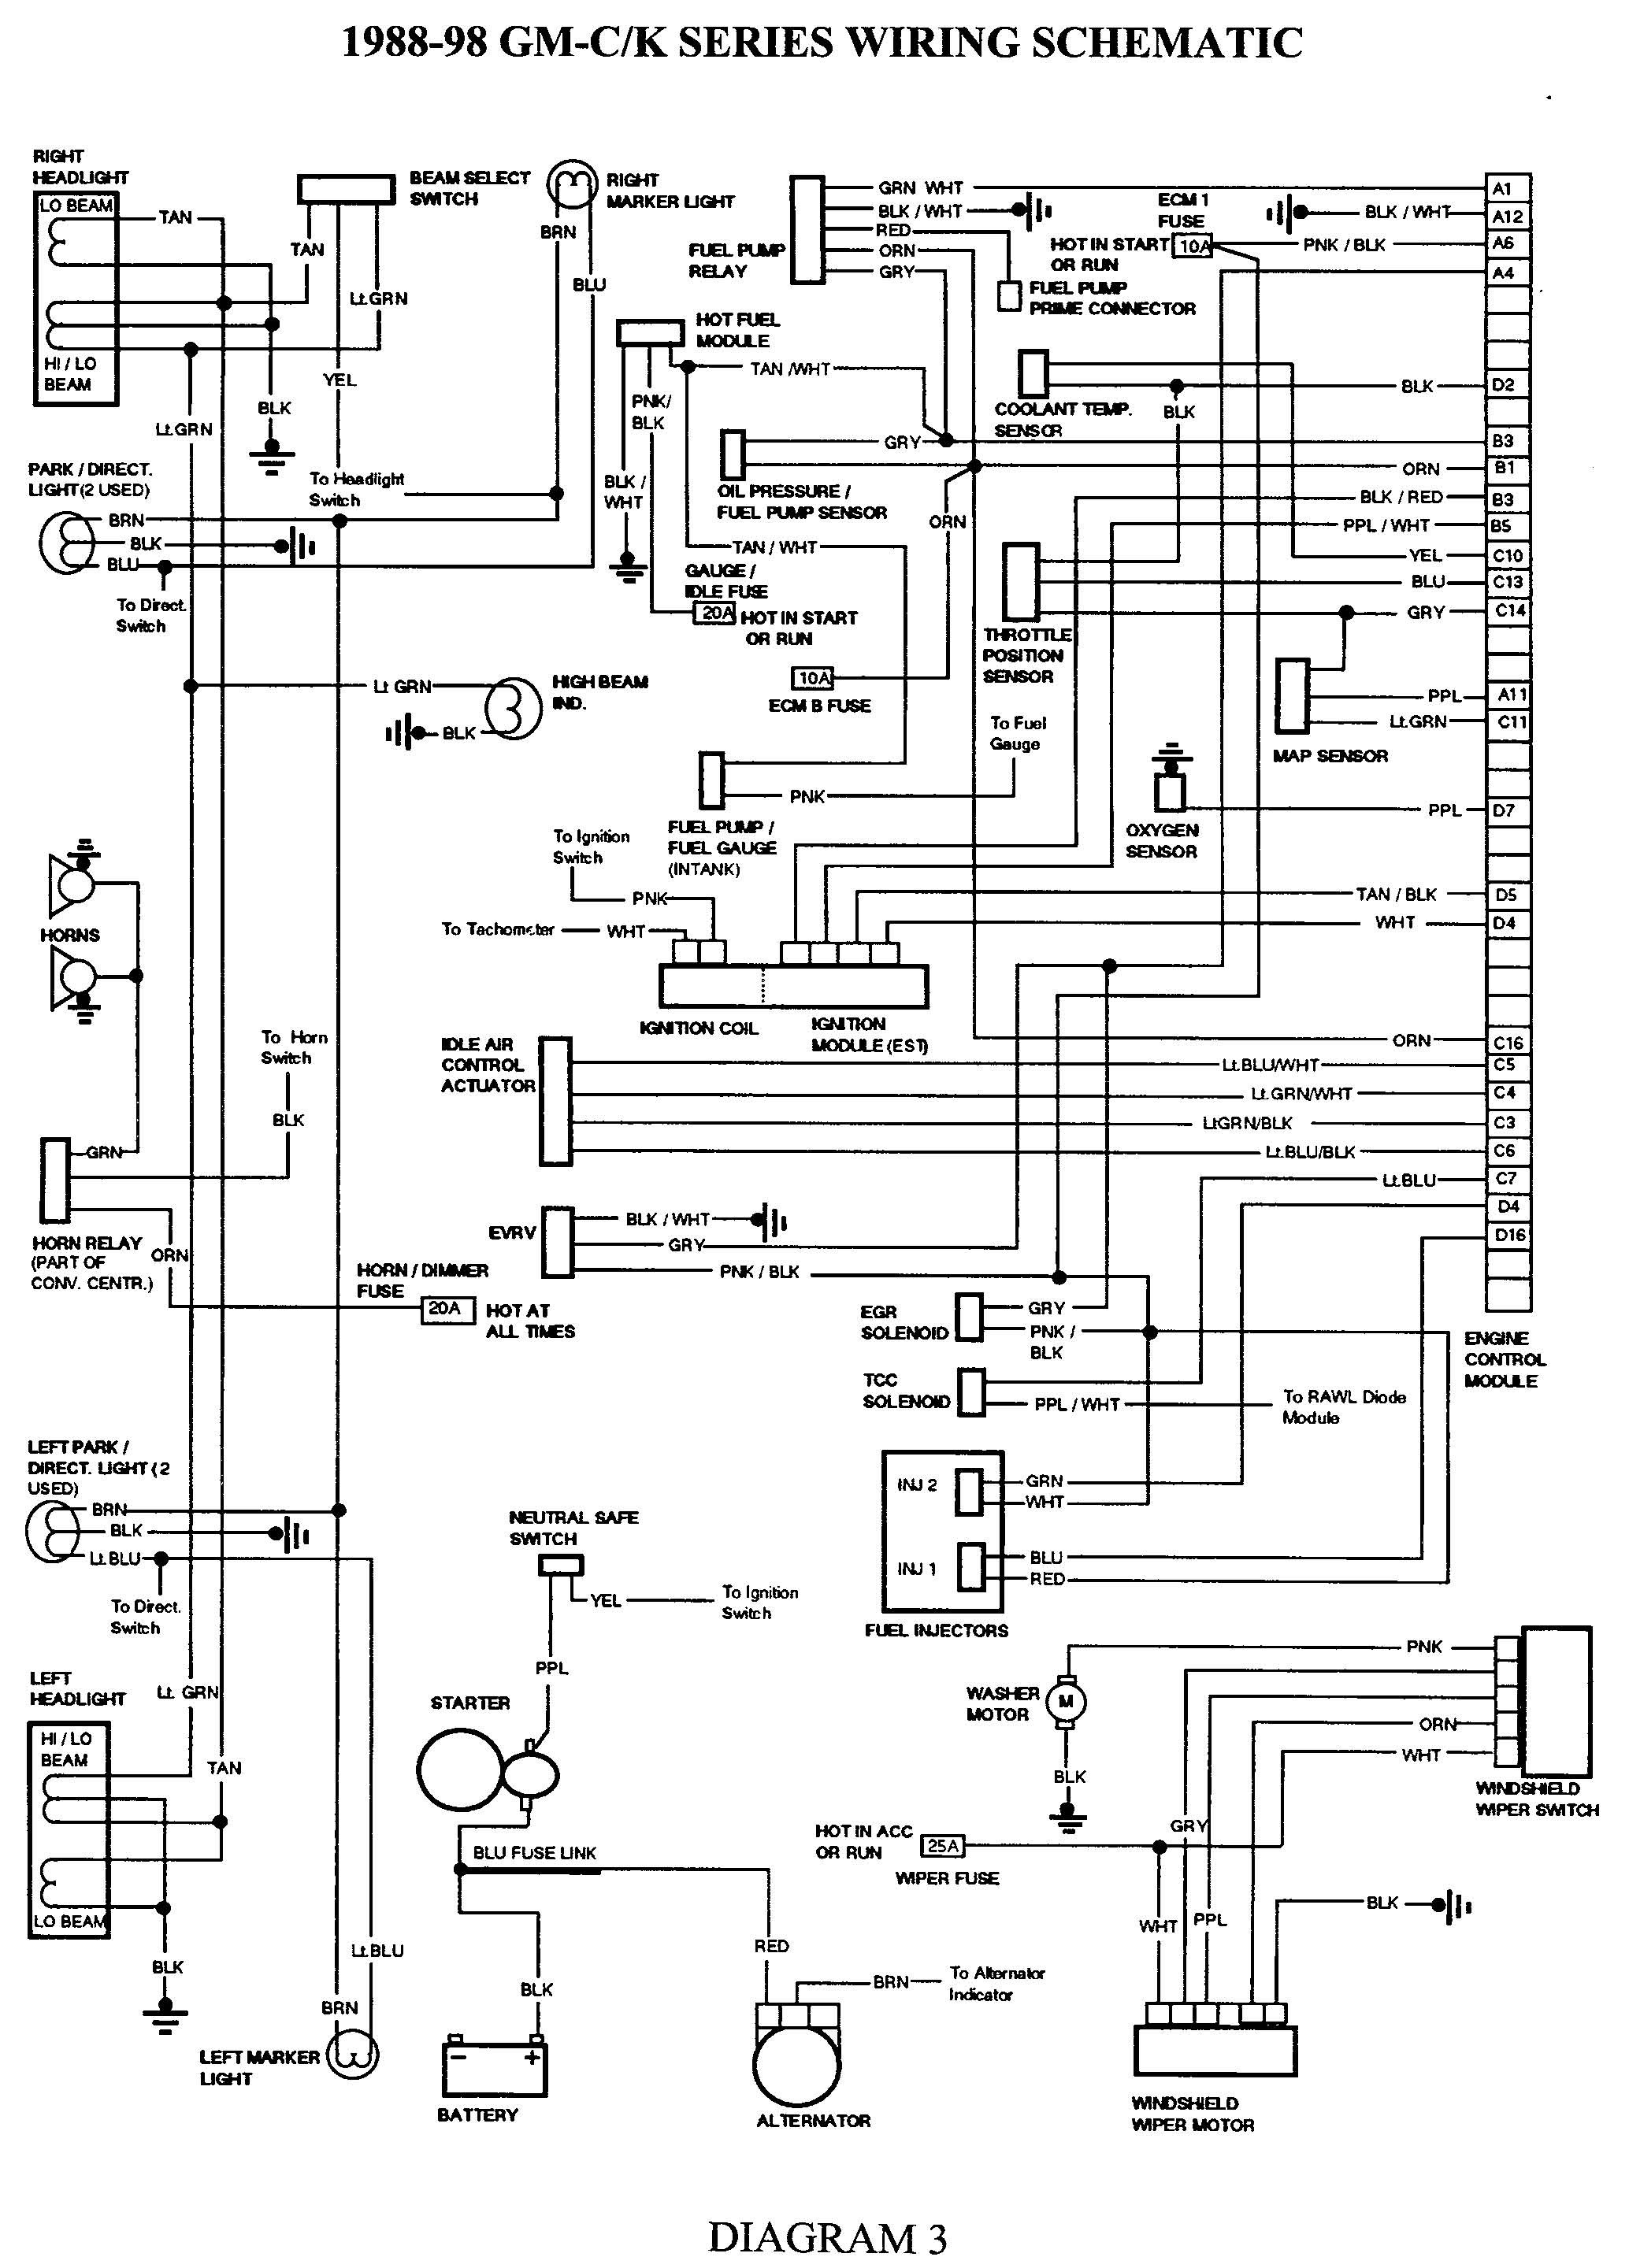 1998 chevy s10 2 2 engine diagram 98 gmc sierra headlight wiring diagram circuit diagrams image of 1998 chevy s10 2 2 engine diagram 1989 chevy s10 wiring diagram 2006 gmc c5500 wiring diagrams 1998